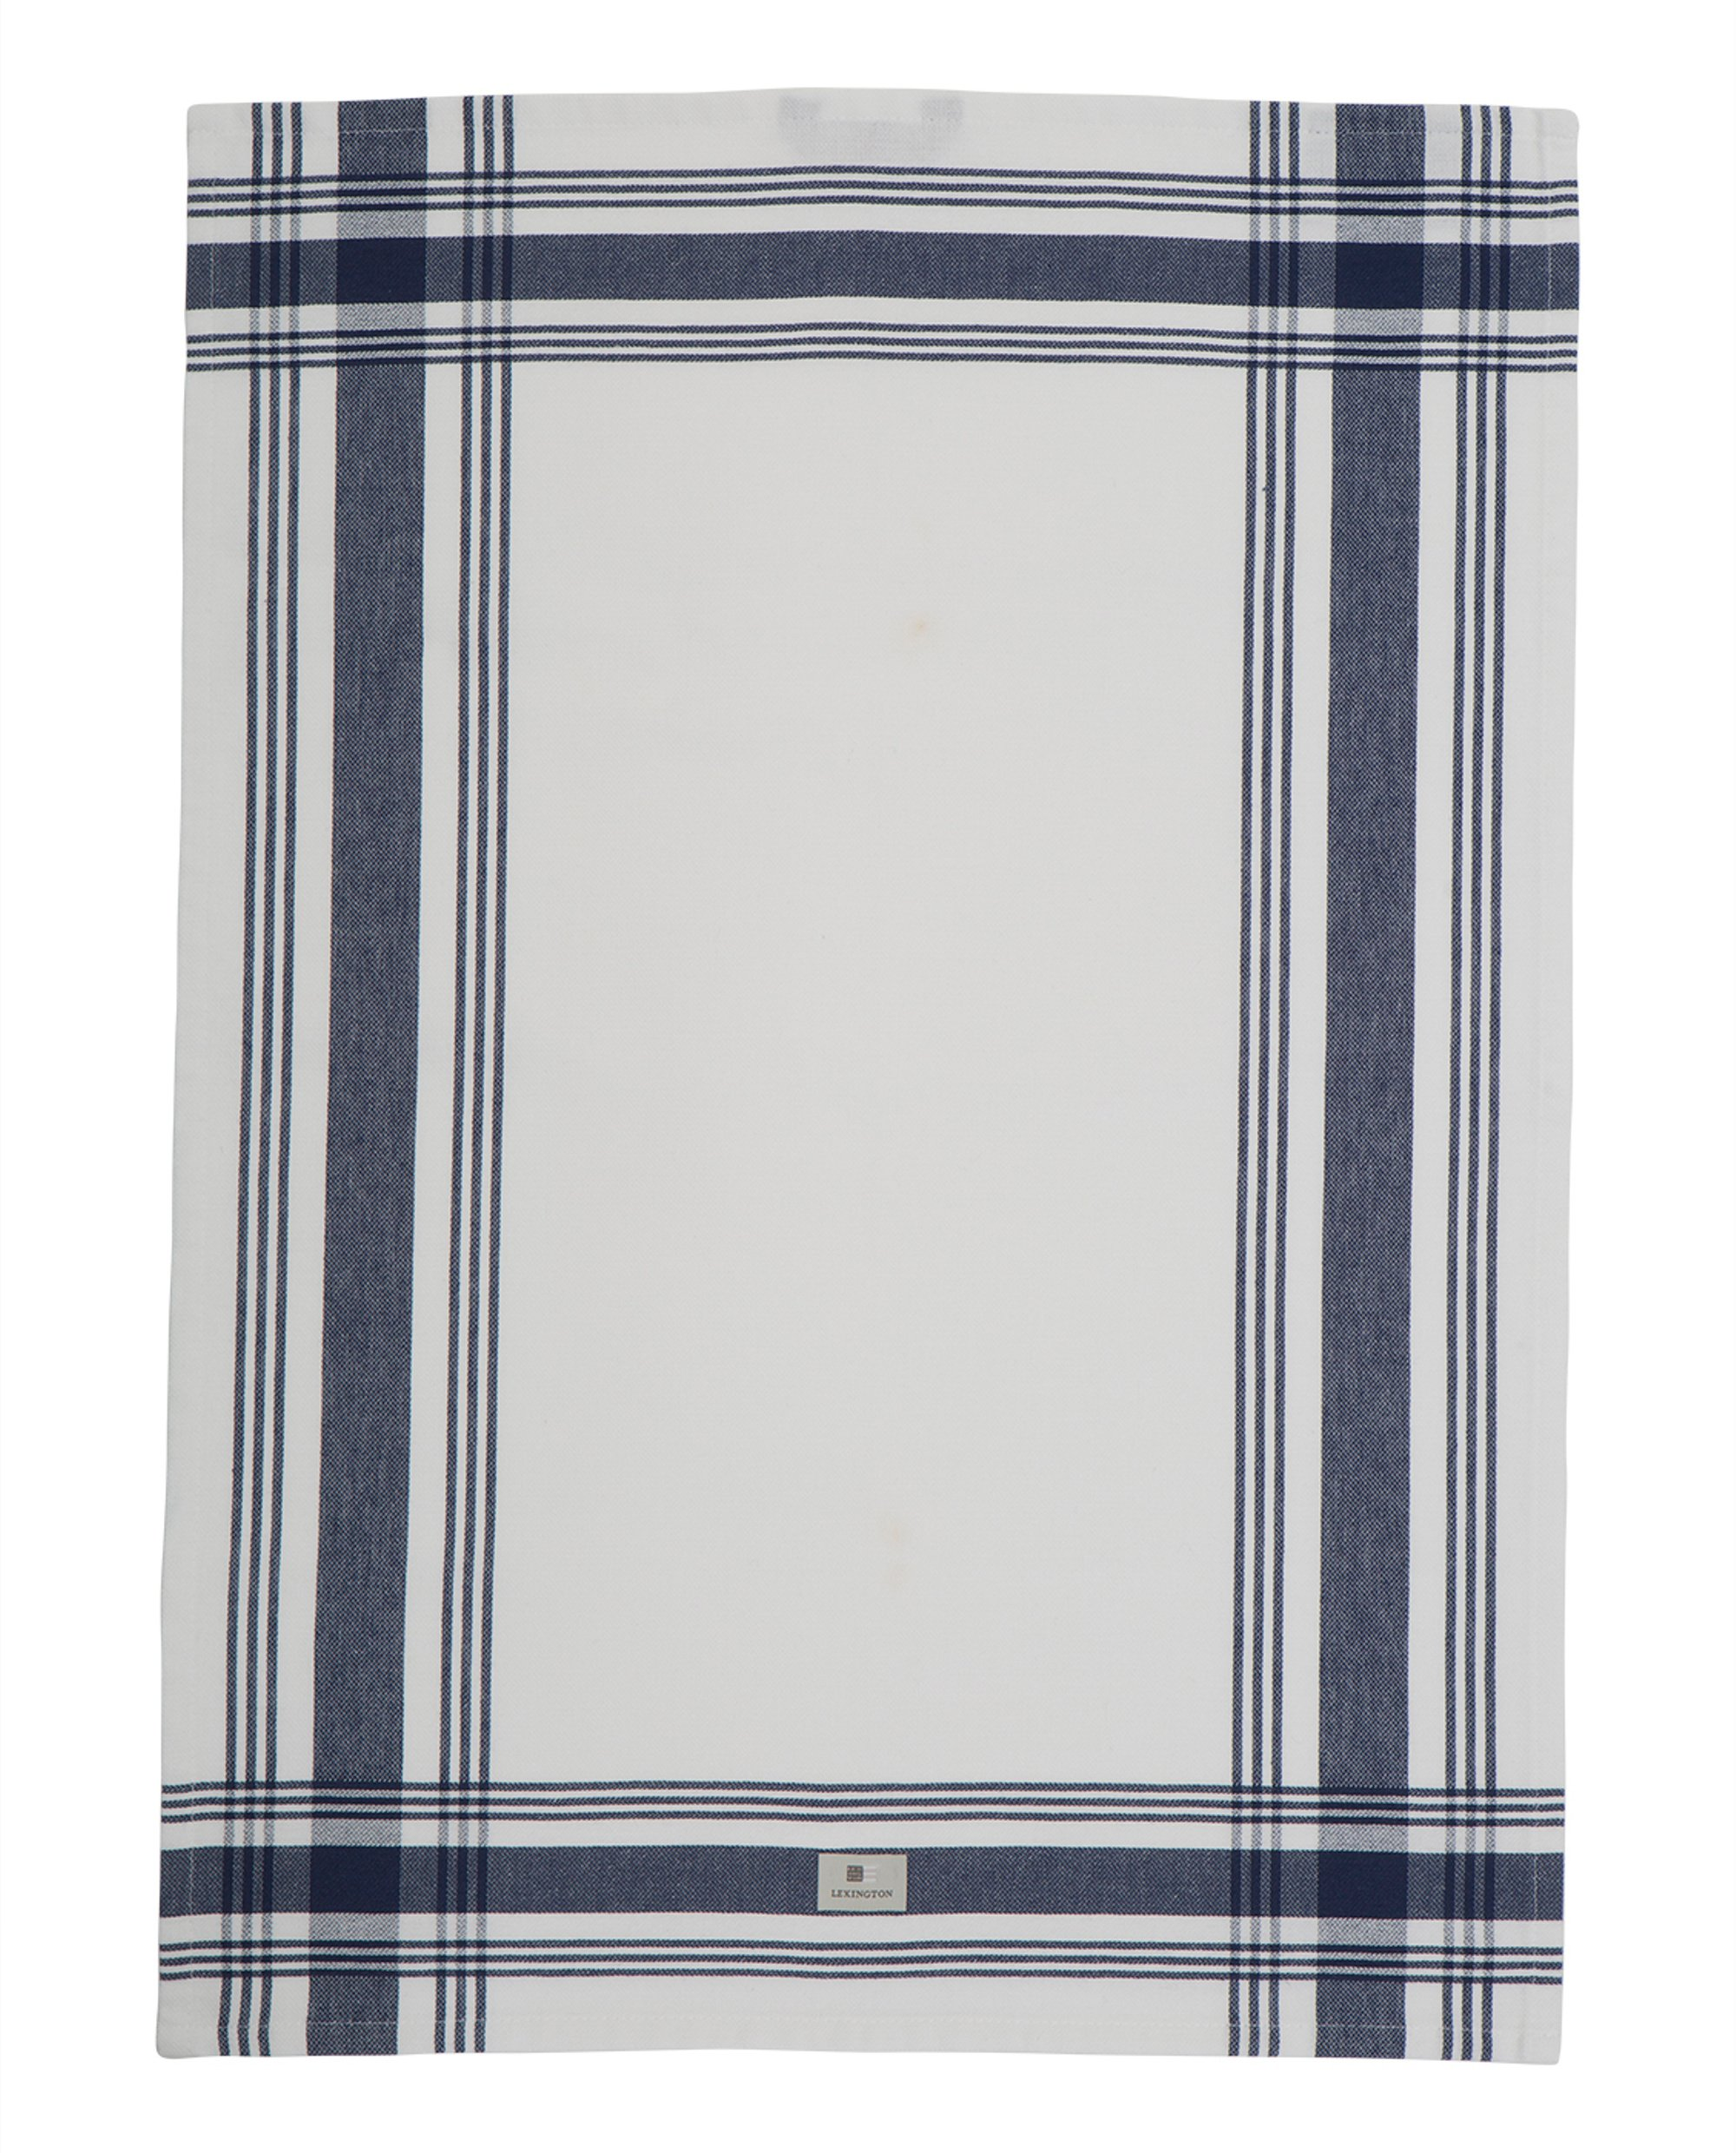 Hotel Framed Kitchen Towel, White/Blue